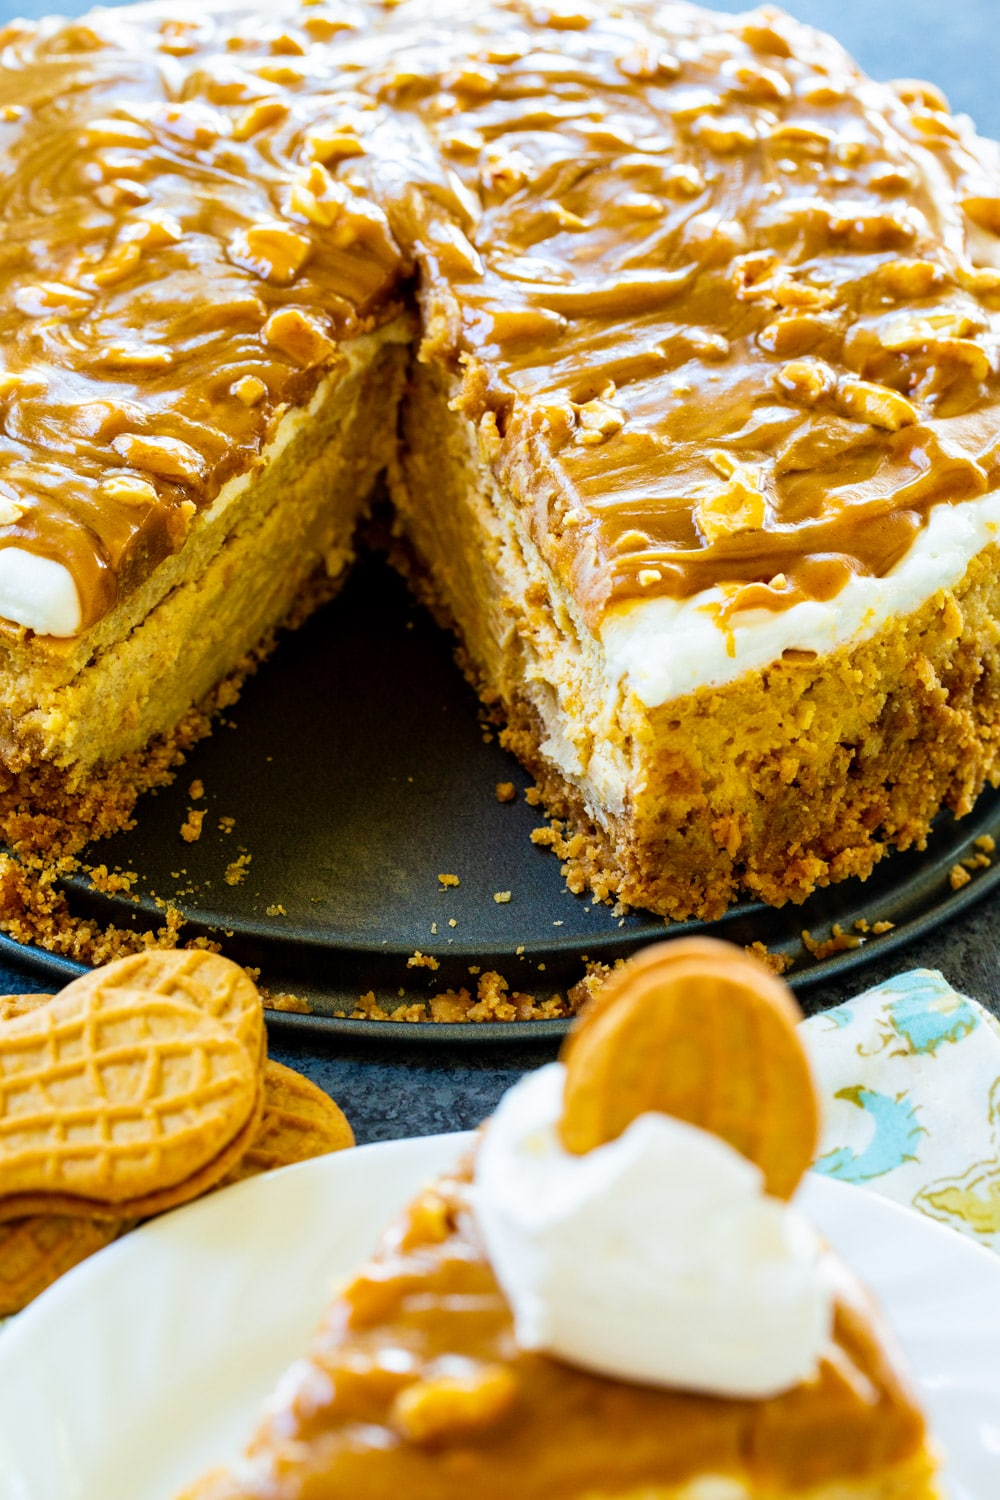 Peanut Butter Cheesecake with a slice cut out.